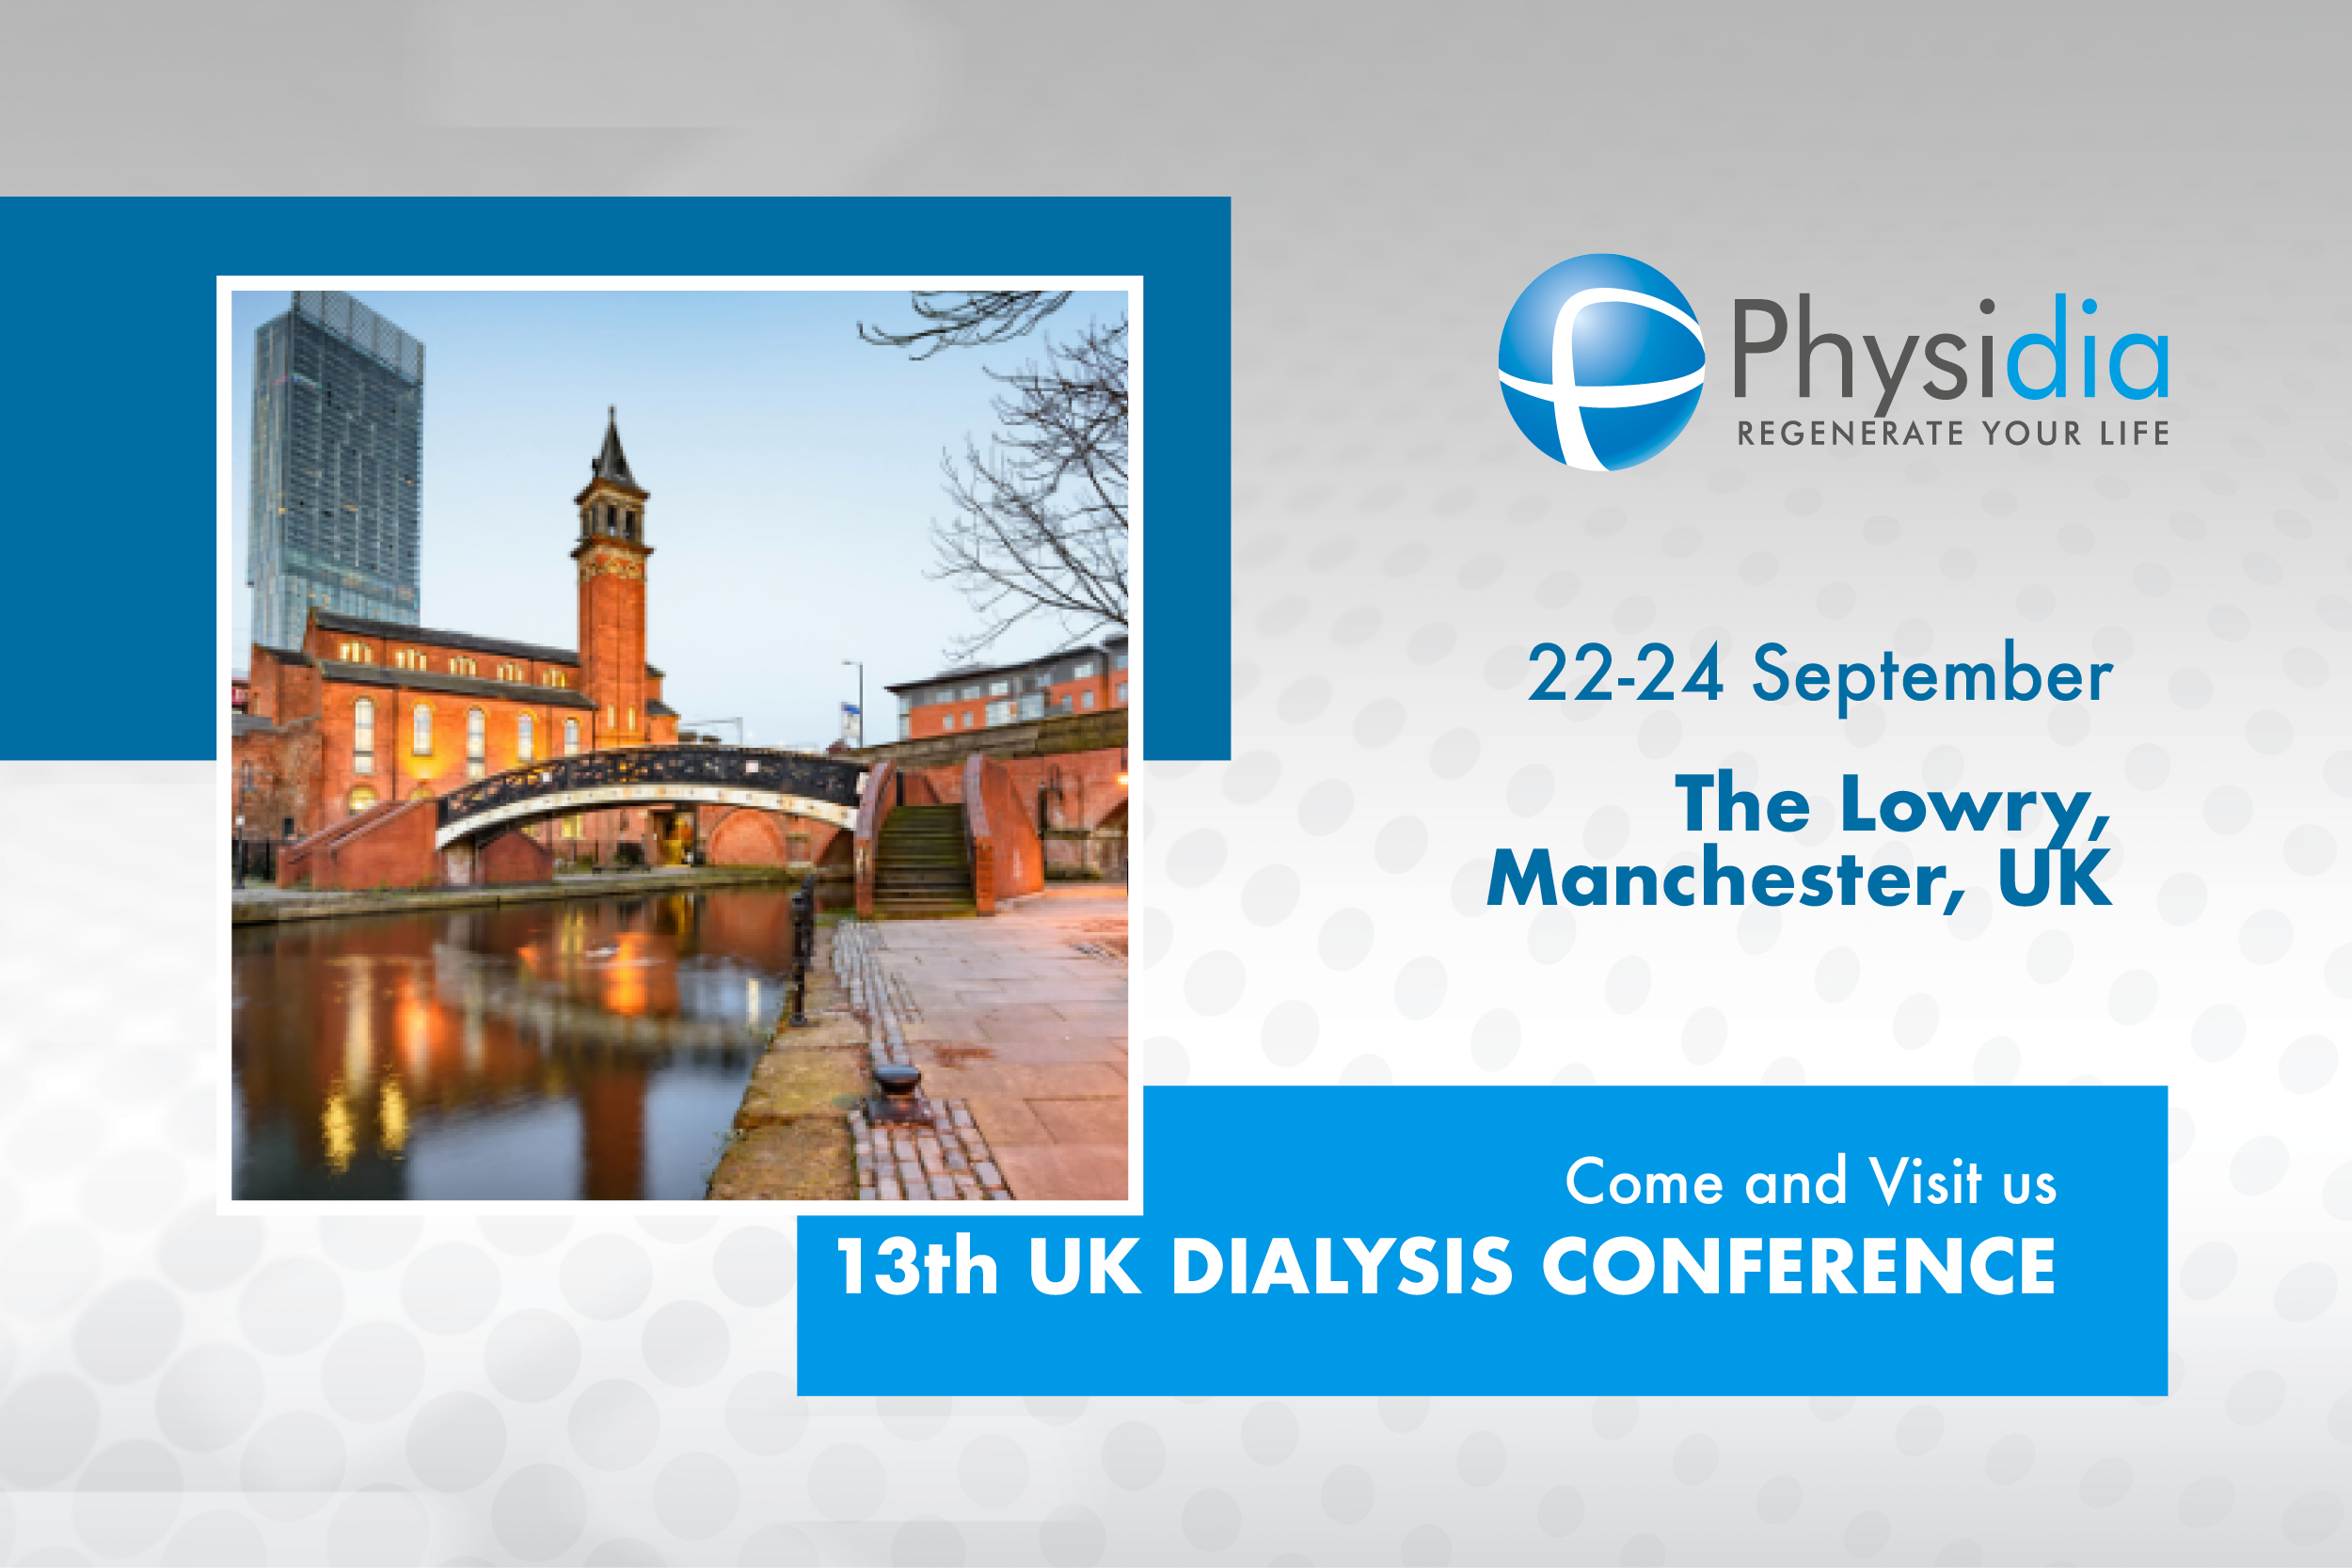 13th-uk-dialysis-conference-2021